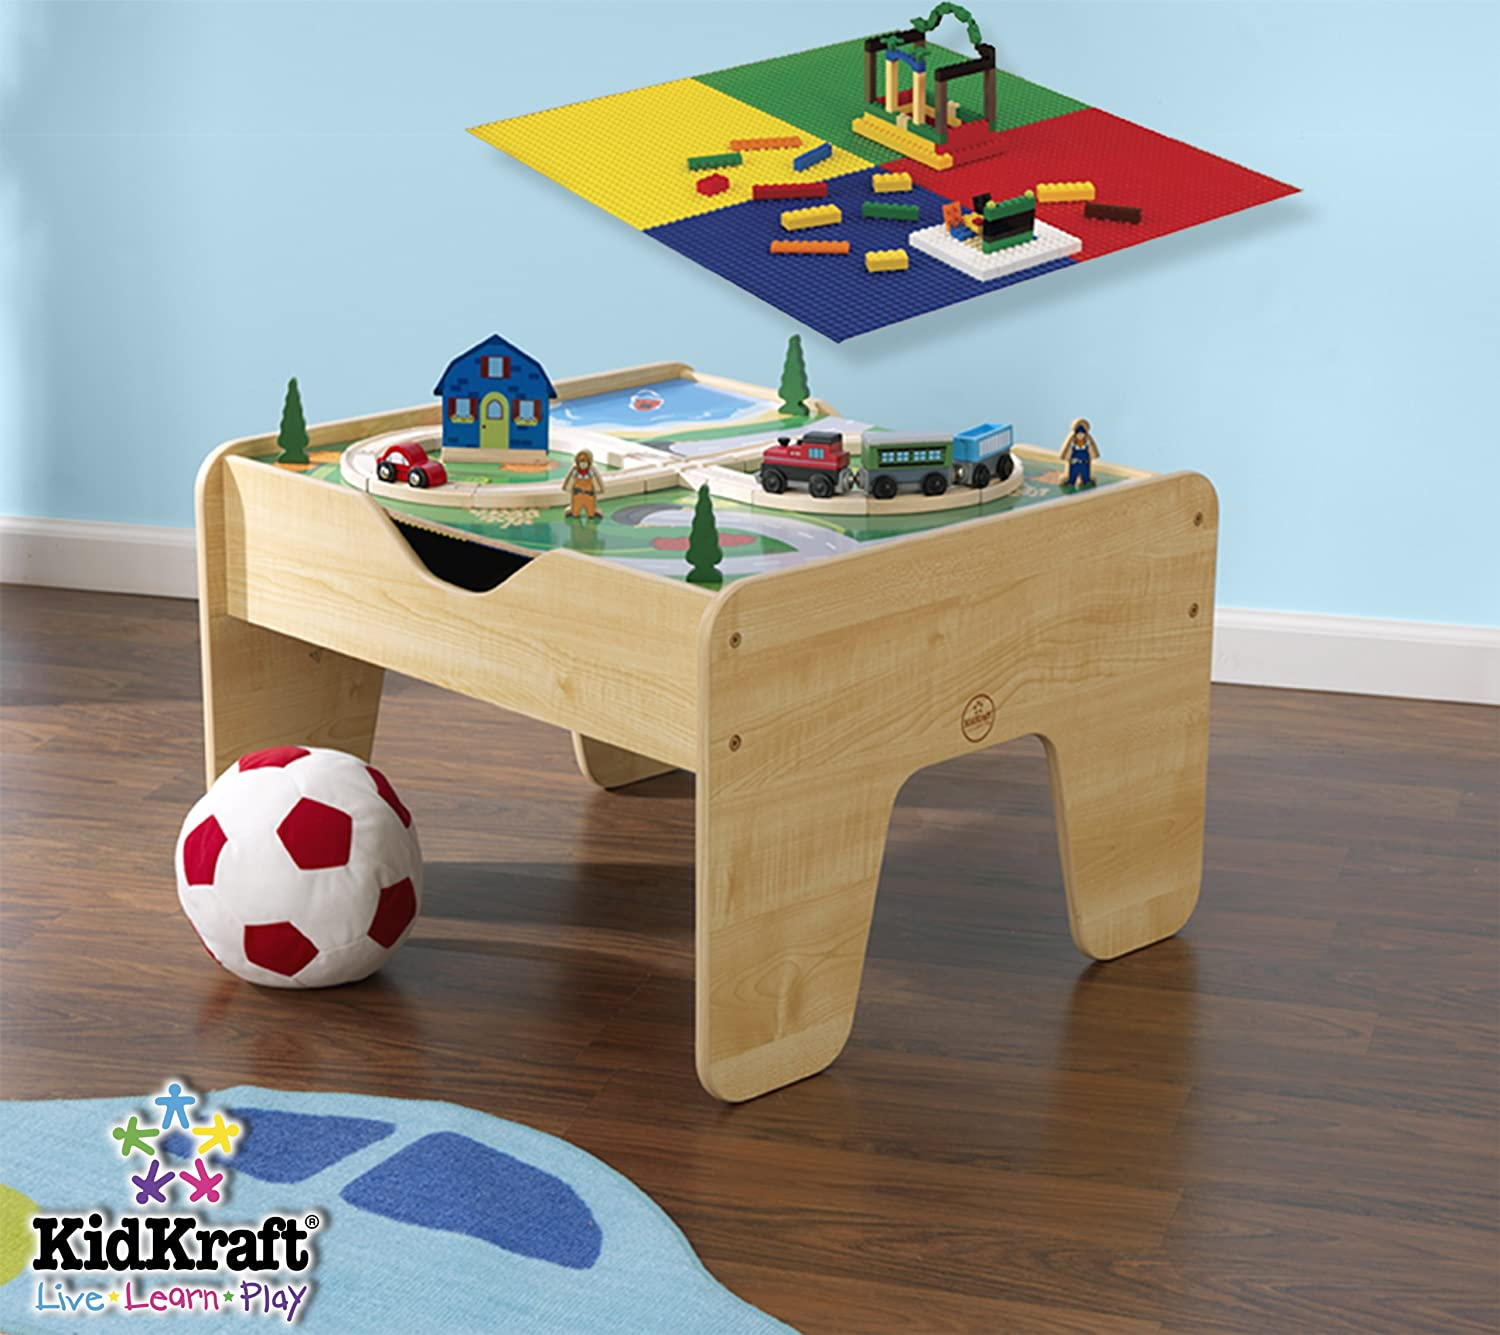 Amazon.com: KidKraft Lego Compatible 2 In 1 Activity Table: Toys U0026 Games